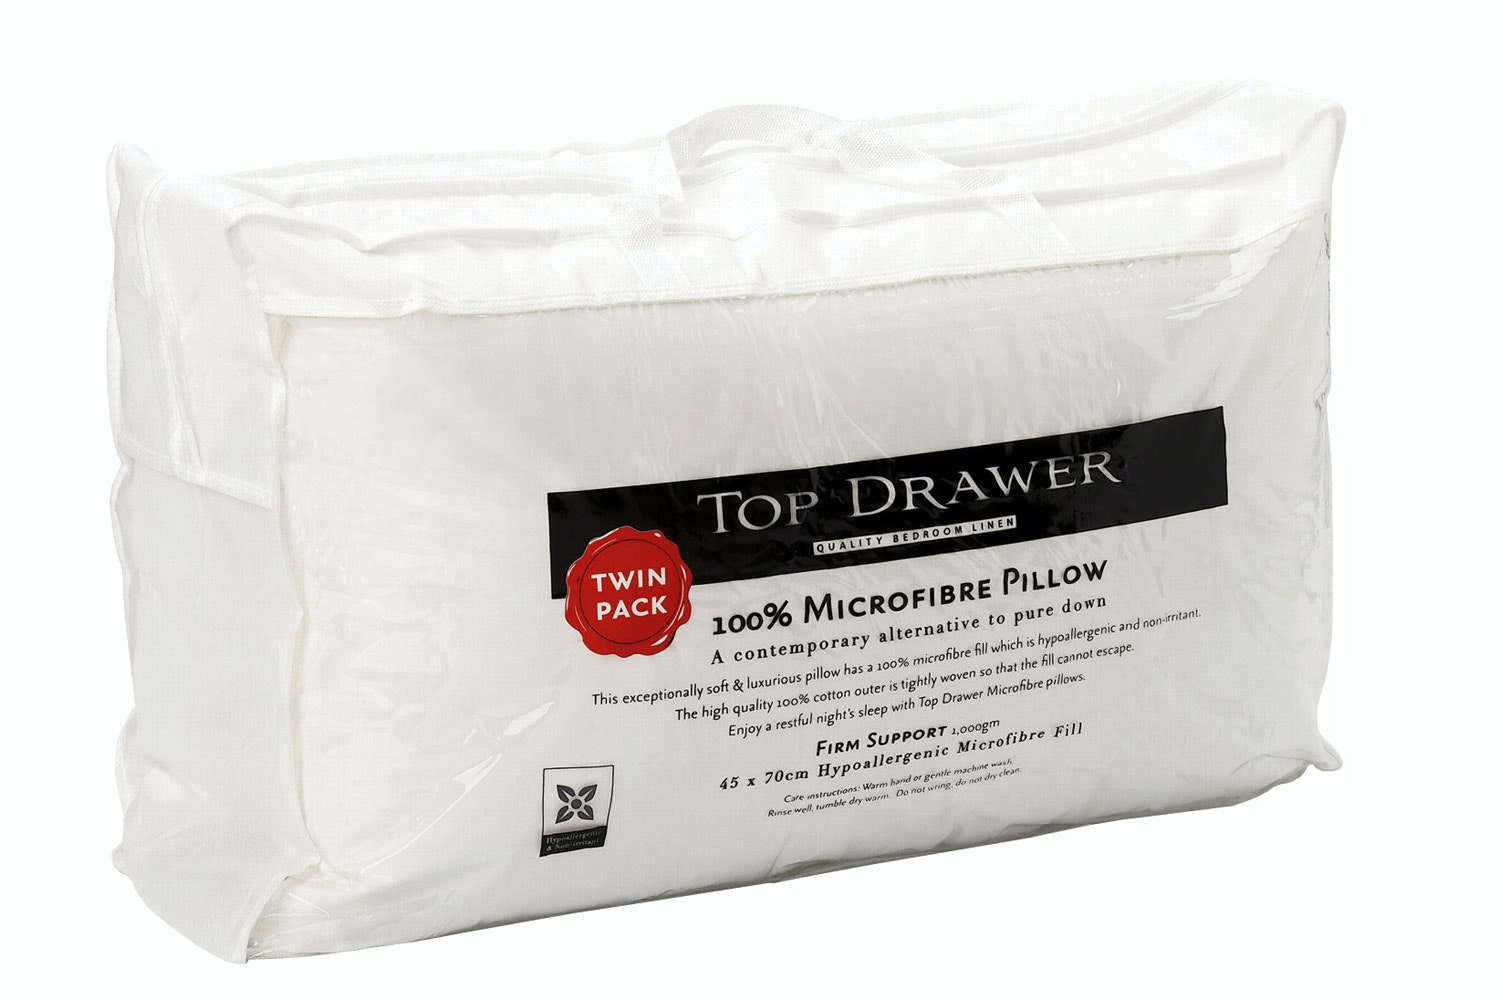 Microfibre Twin Pack Pillow by Top Drawer